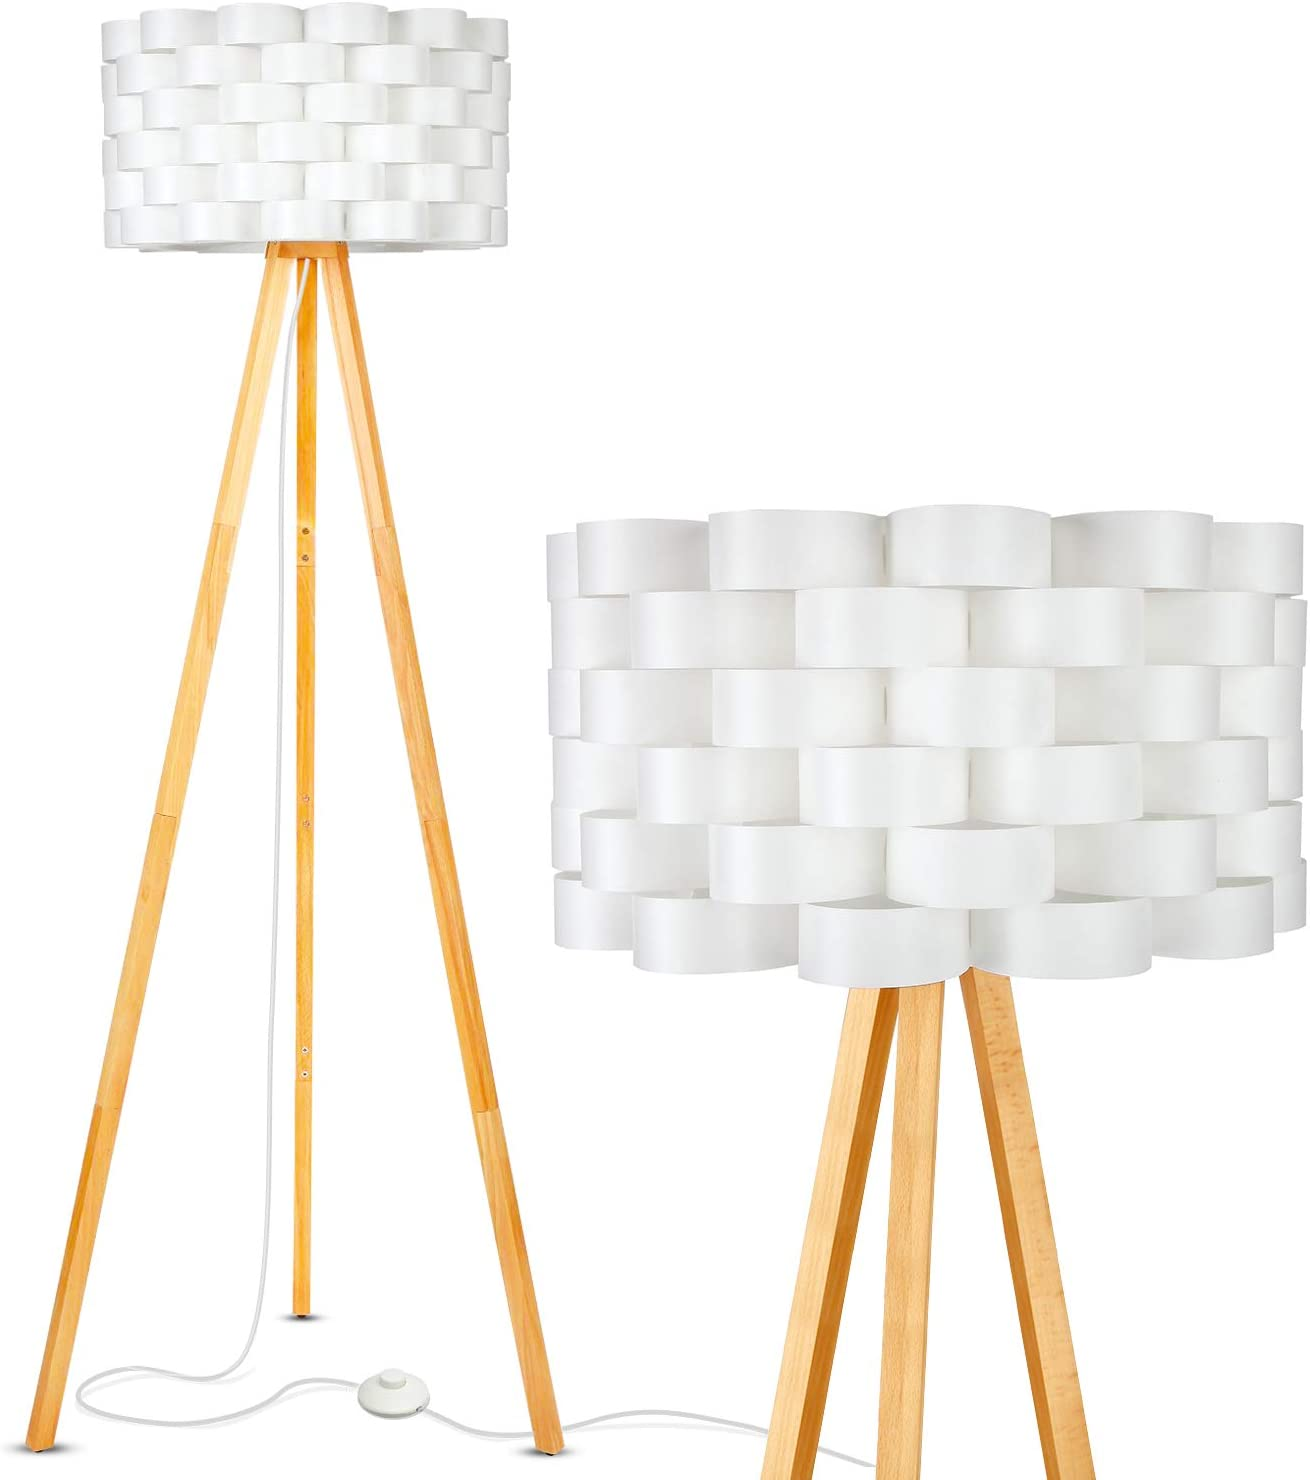 Brightech Bijou LED Tripod Floor Lamp Contemporary Design for Modern Living Rooms – Soft, Ambient Lighting, Tall Standing Easel Survey Lamp for Bedroom, Family Room, or Office – Natural Wood Color